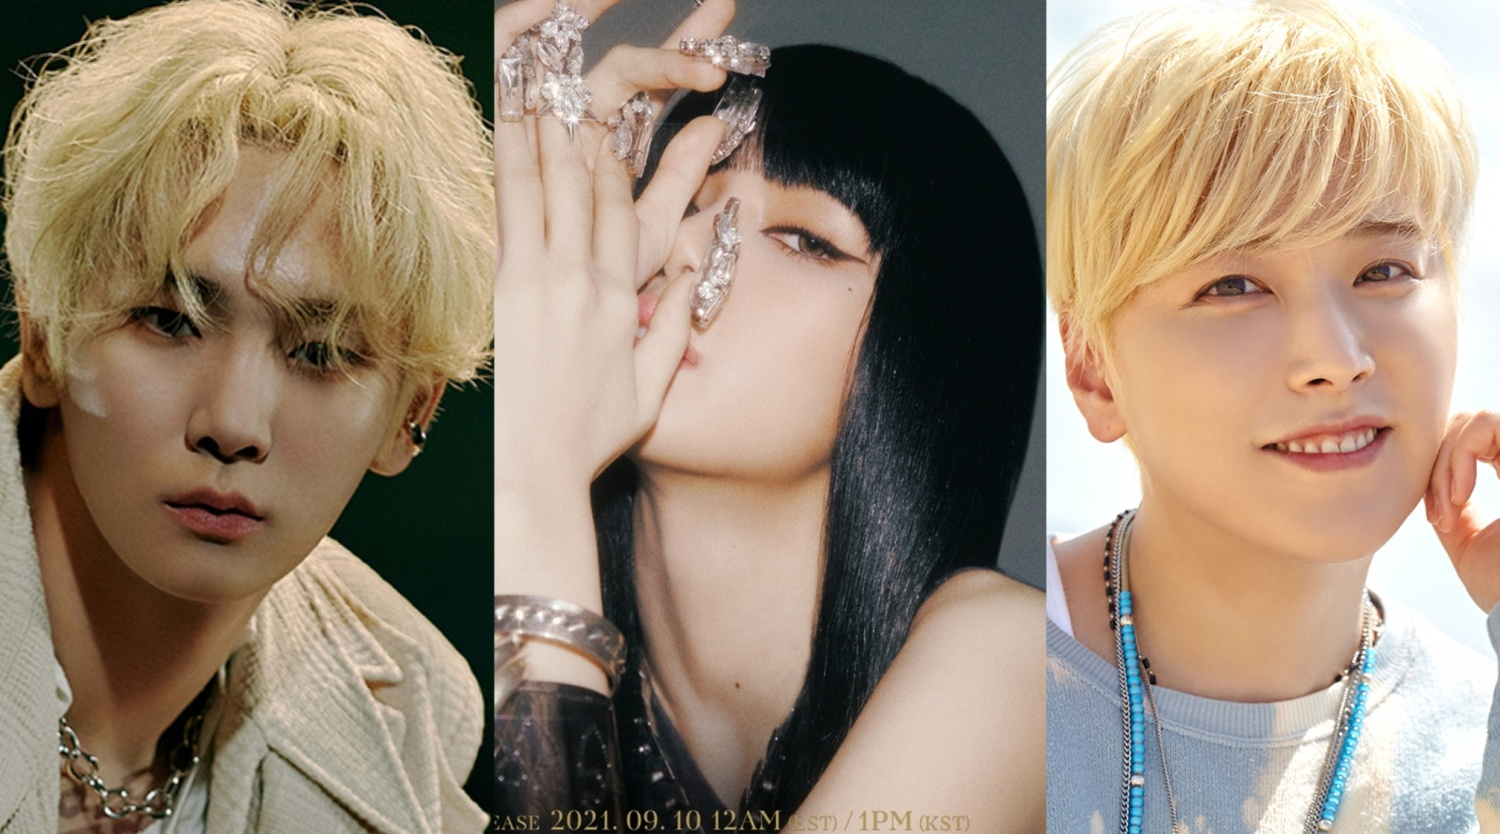 Lisa, Key, Sungmin, & More: September Battle of Soloists – Whose Release Are You Anticipating The Most?